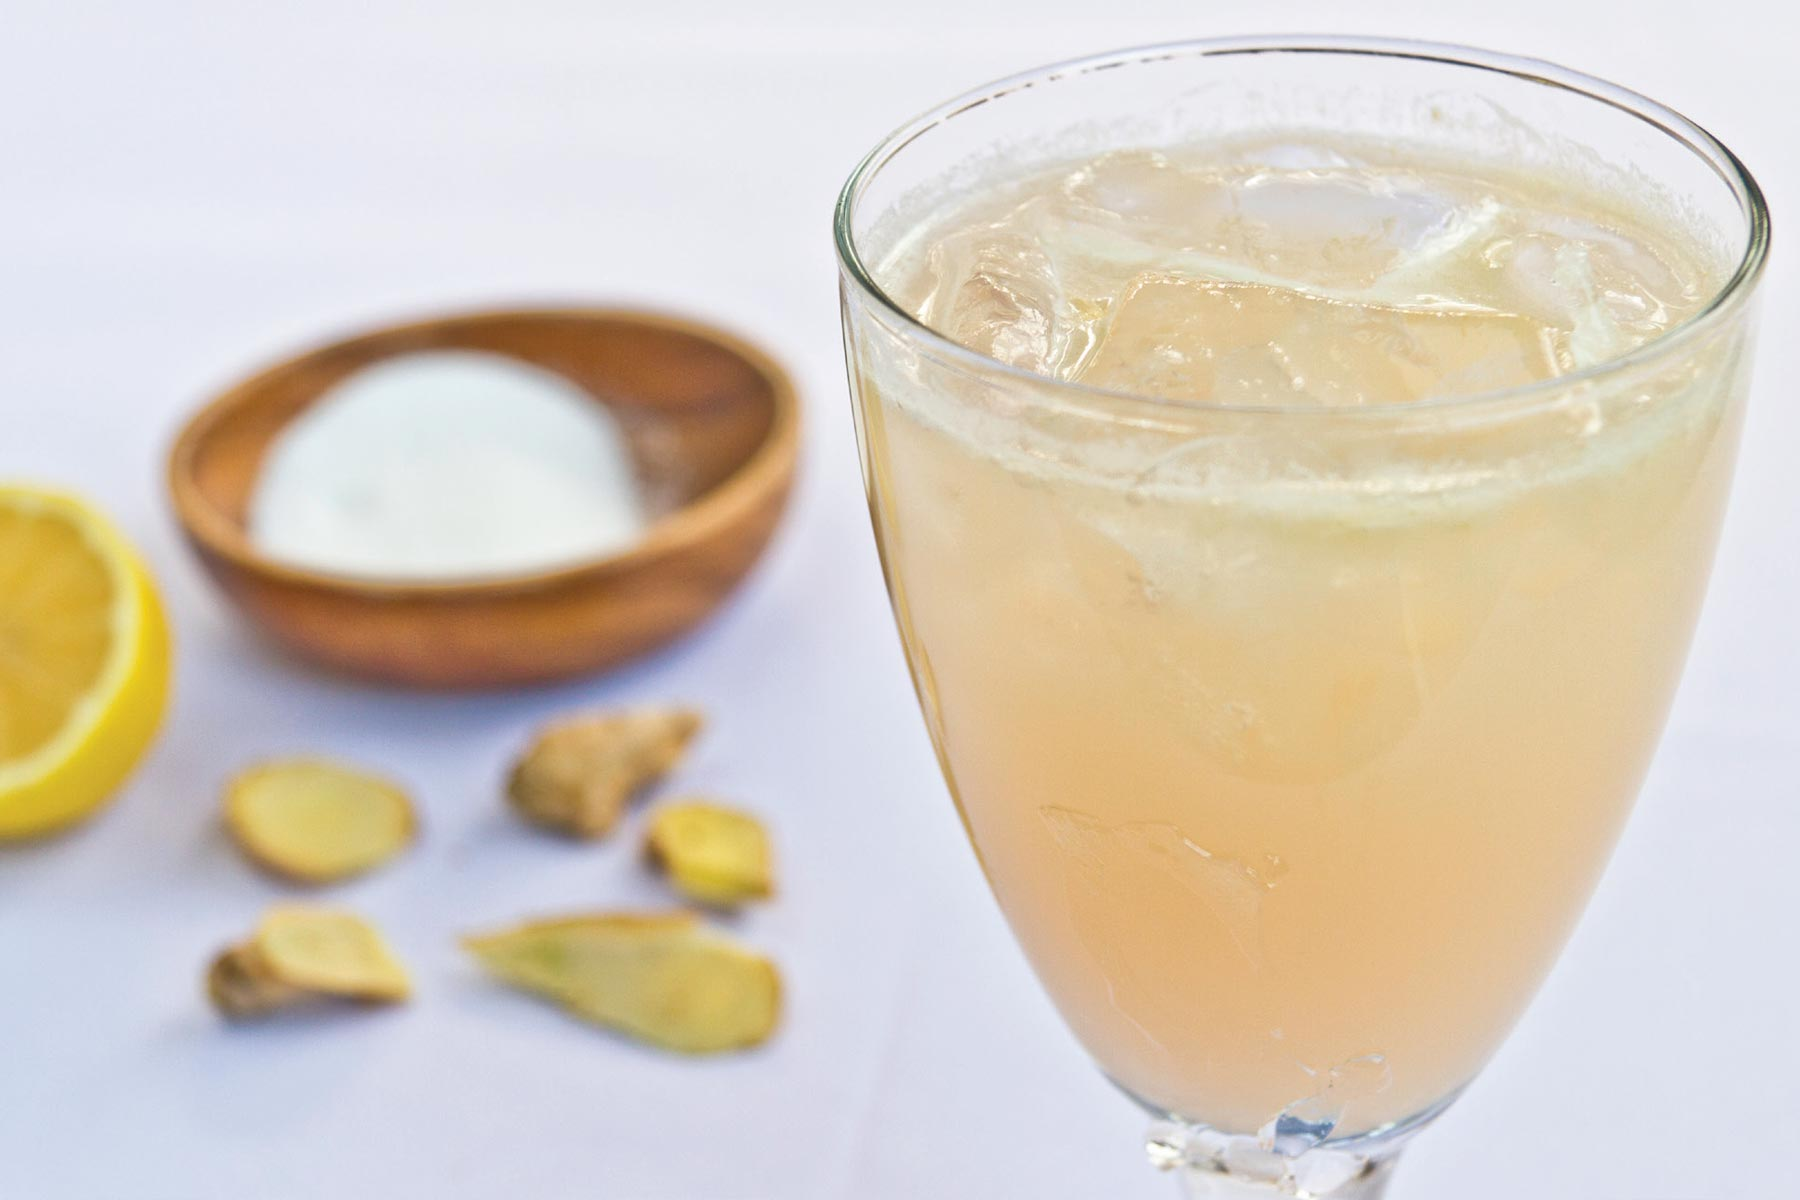 This Ginger-Lemon Spritzer recipe is Ornish Lifestyle Medicine™ Approved and posted by Sentara Healthcare in Hampton Roads